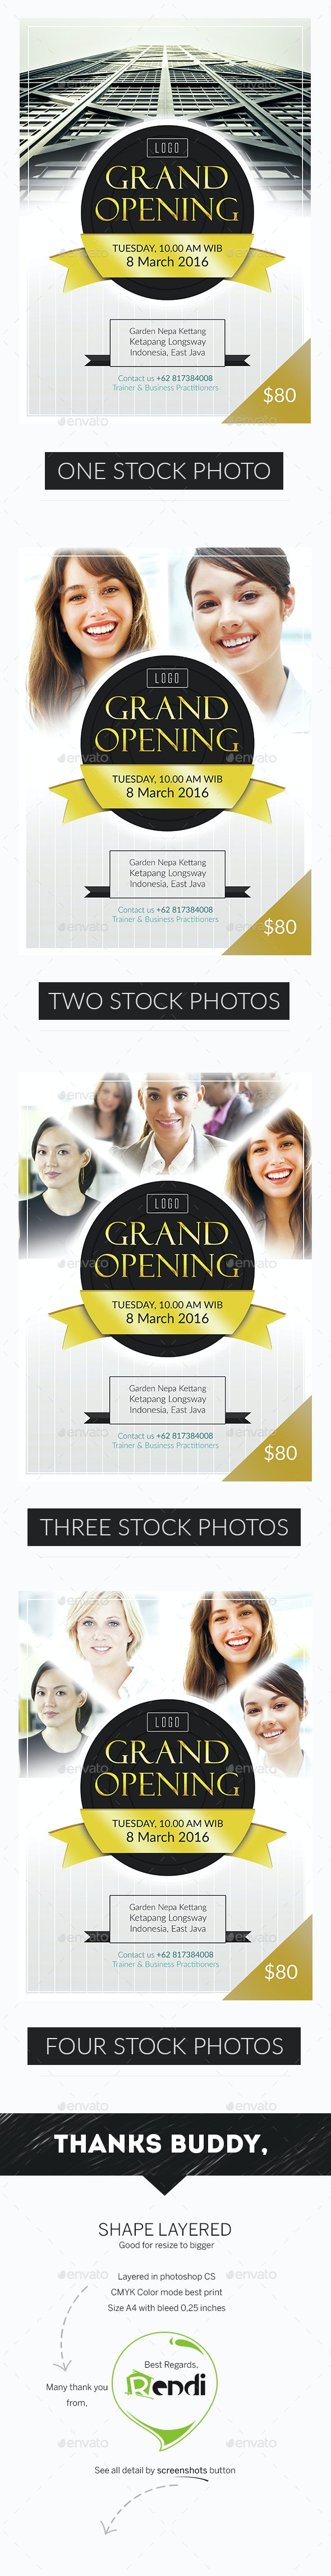 Grand Opening Professional - Corporate Flyers